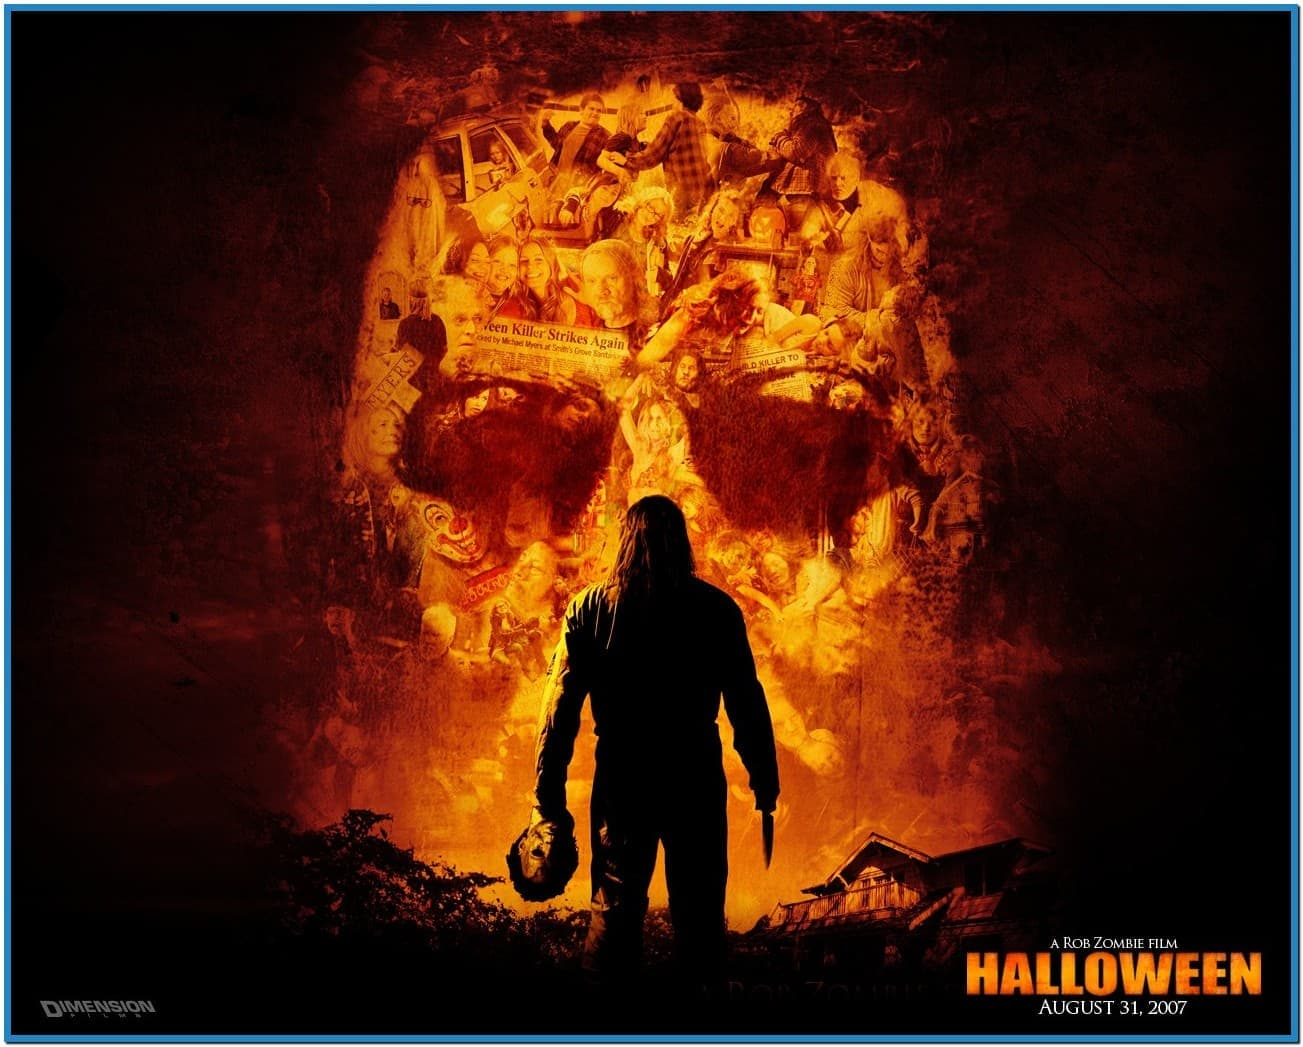 Free screensavers wallpaper halloween wallpapersafari - Scary halloween screensavers animated ...